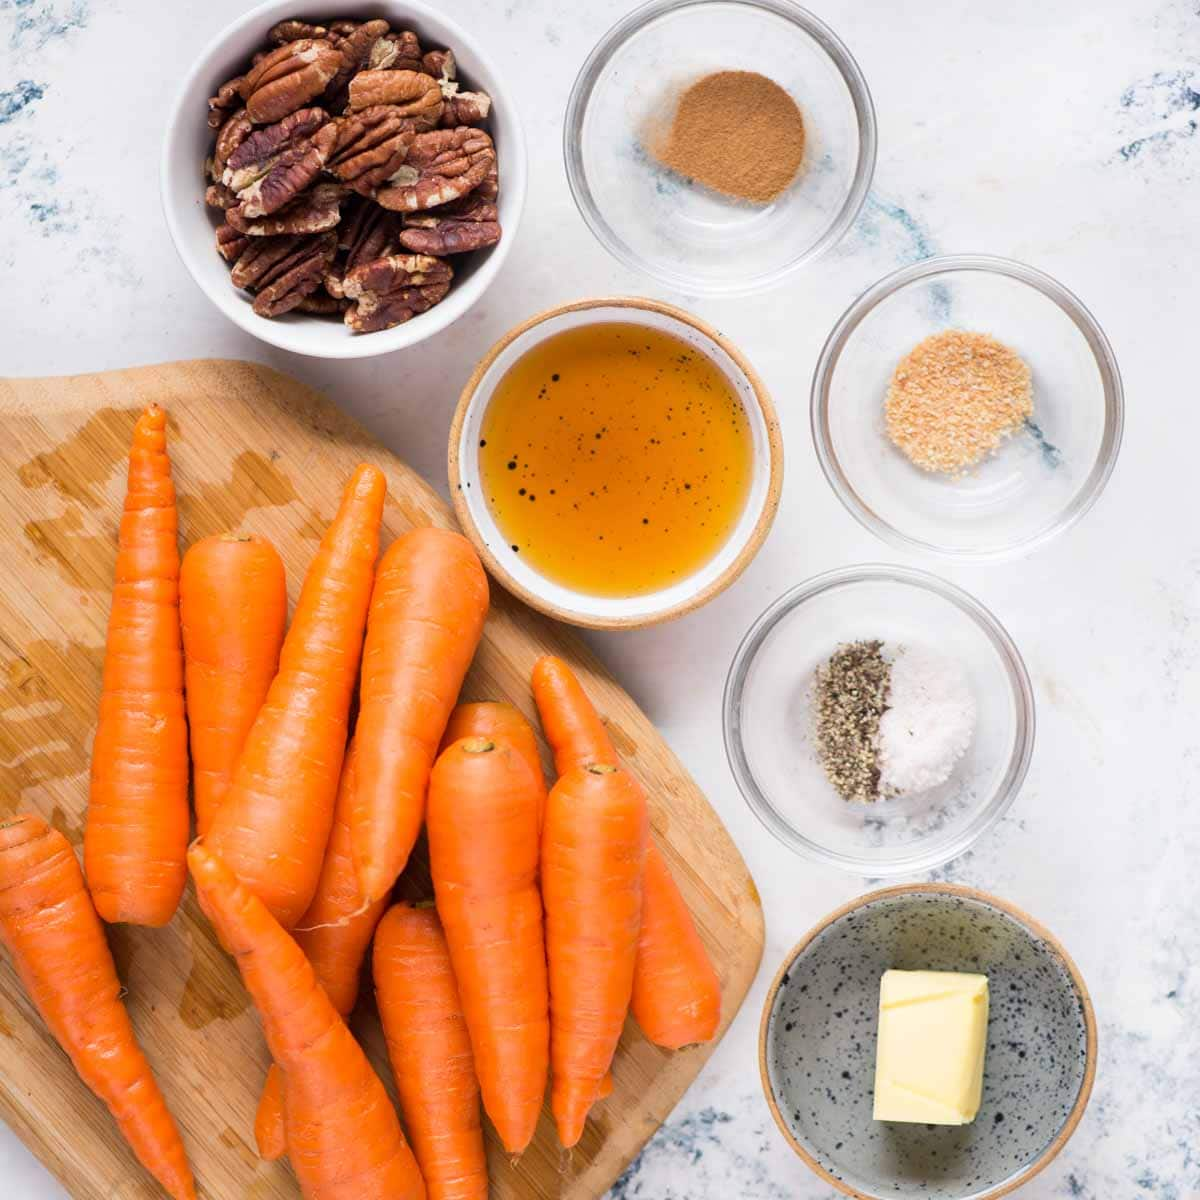 Carrot tossed in a honey cinnamon Pecan has a hint of garlic.